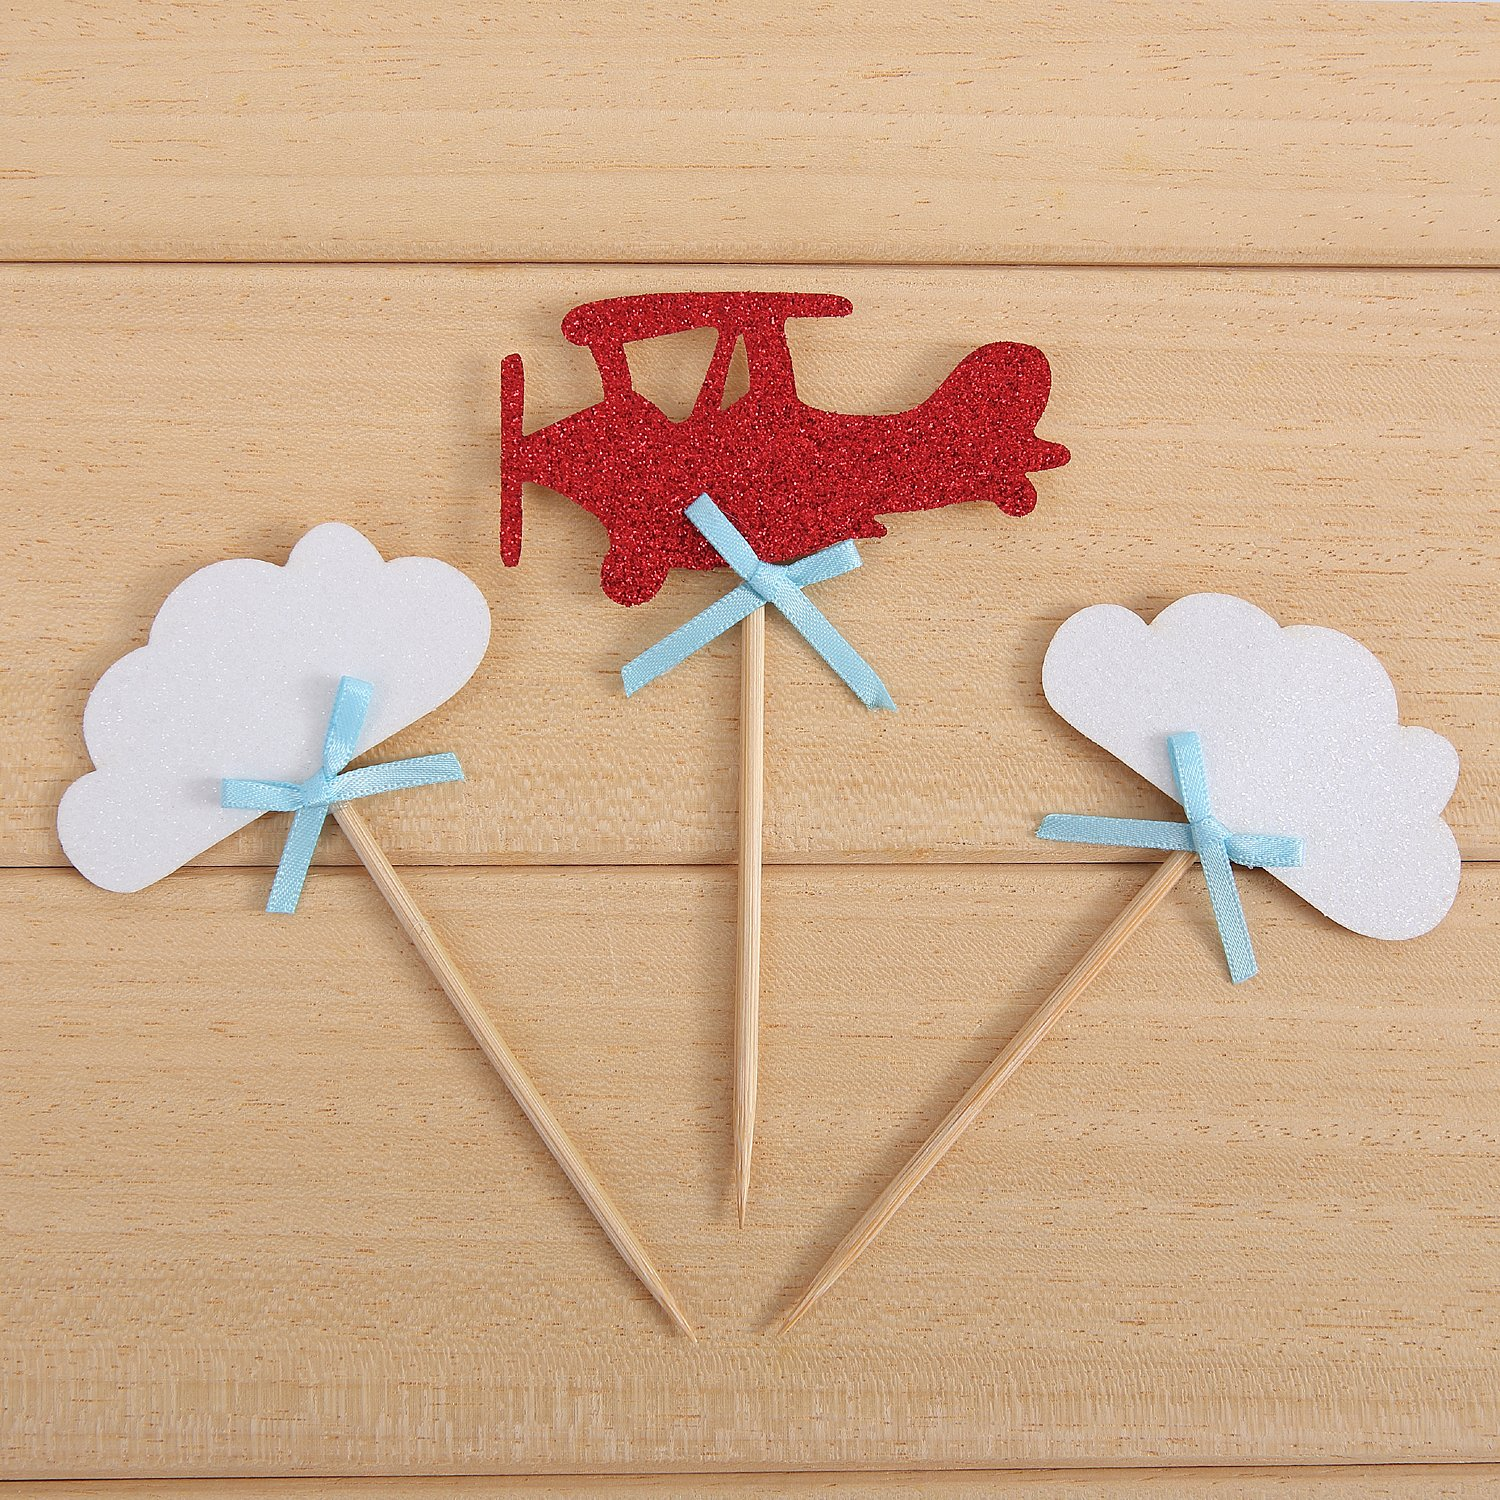 24 Pack Cloud and Airplane Cupcake Toppers Up Up Kids' Party Decors - by Giuffi